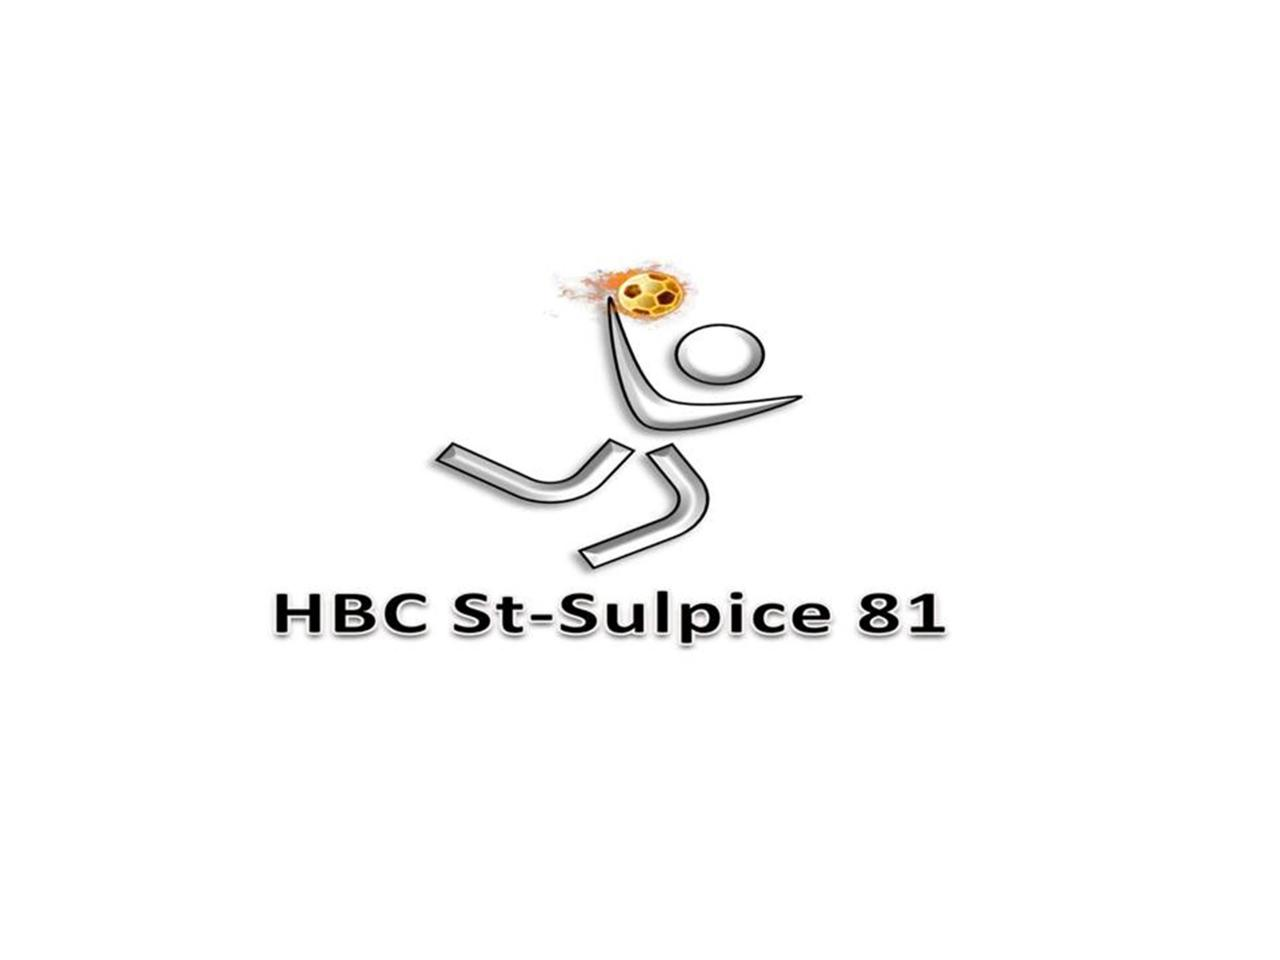 Handball Club Saint Sulpice 81